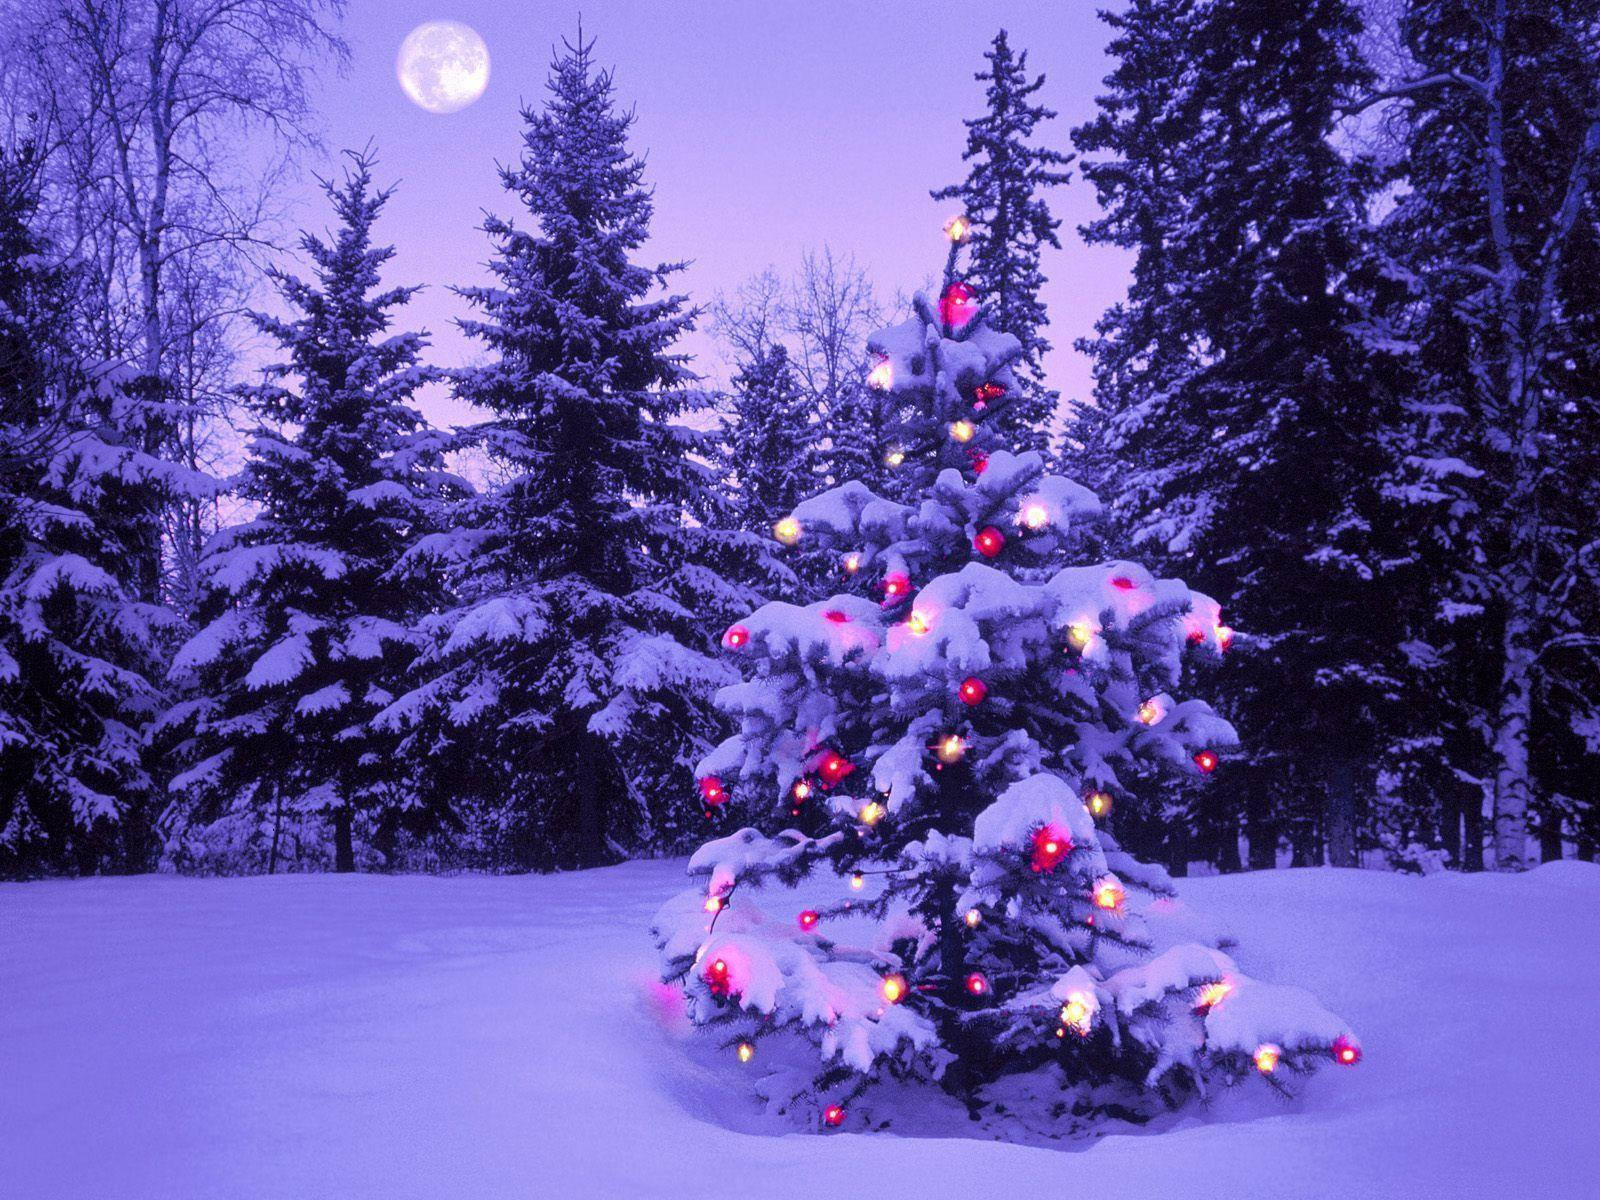 Christmas Snow Wallpaper Images 6 HD Wallpapers | Hdimges.